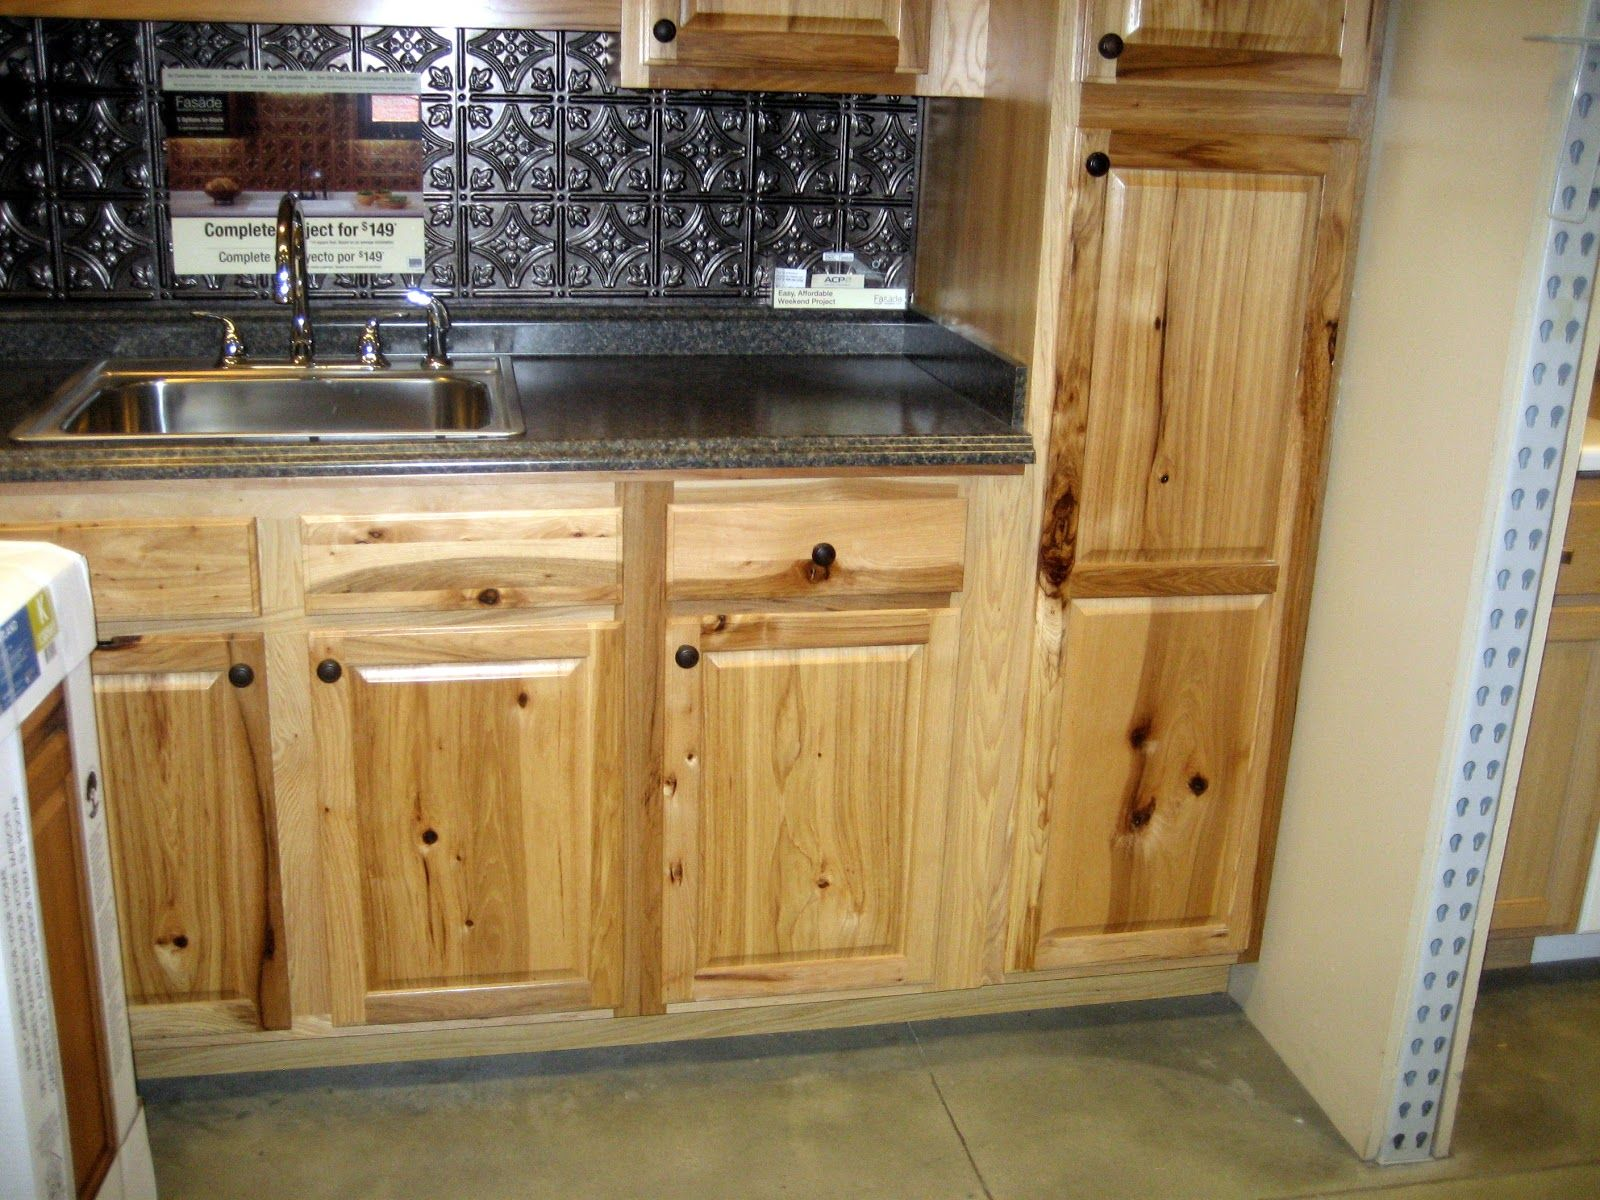 Rustic Hickory Cabinets With Black Countertop And Chrome